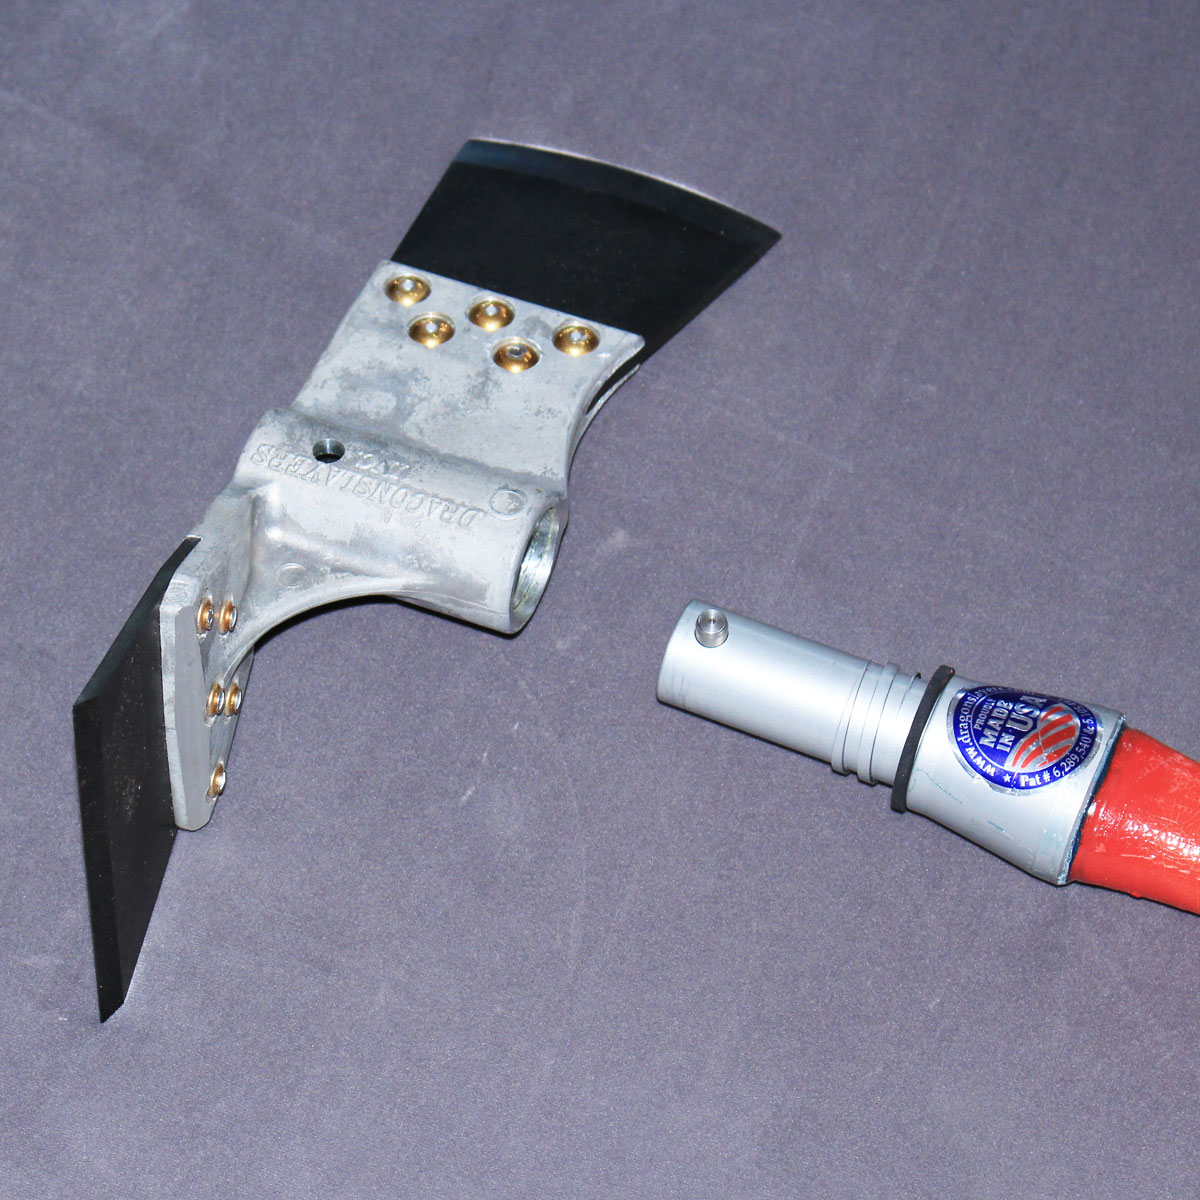 Combination Pulaski Firefighter Tool